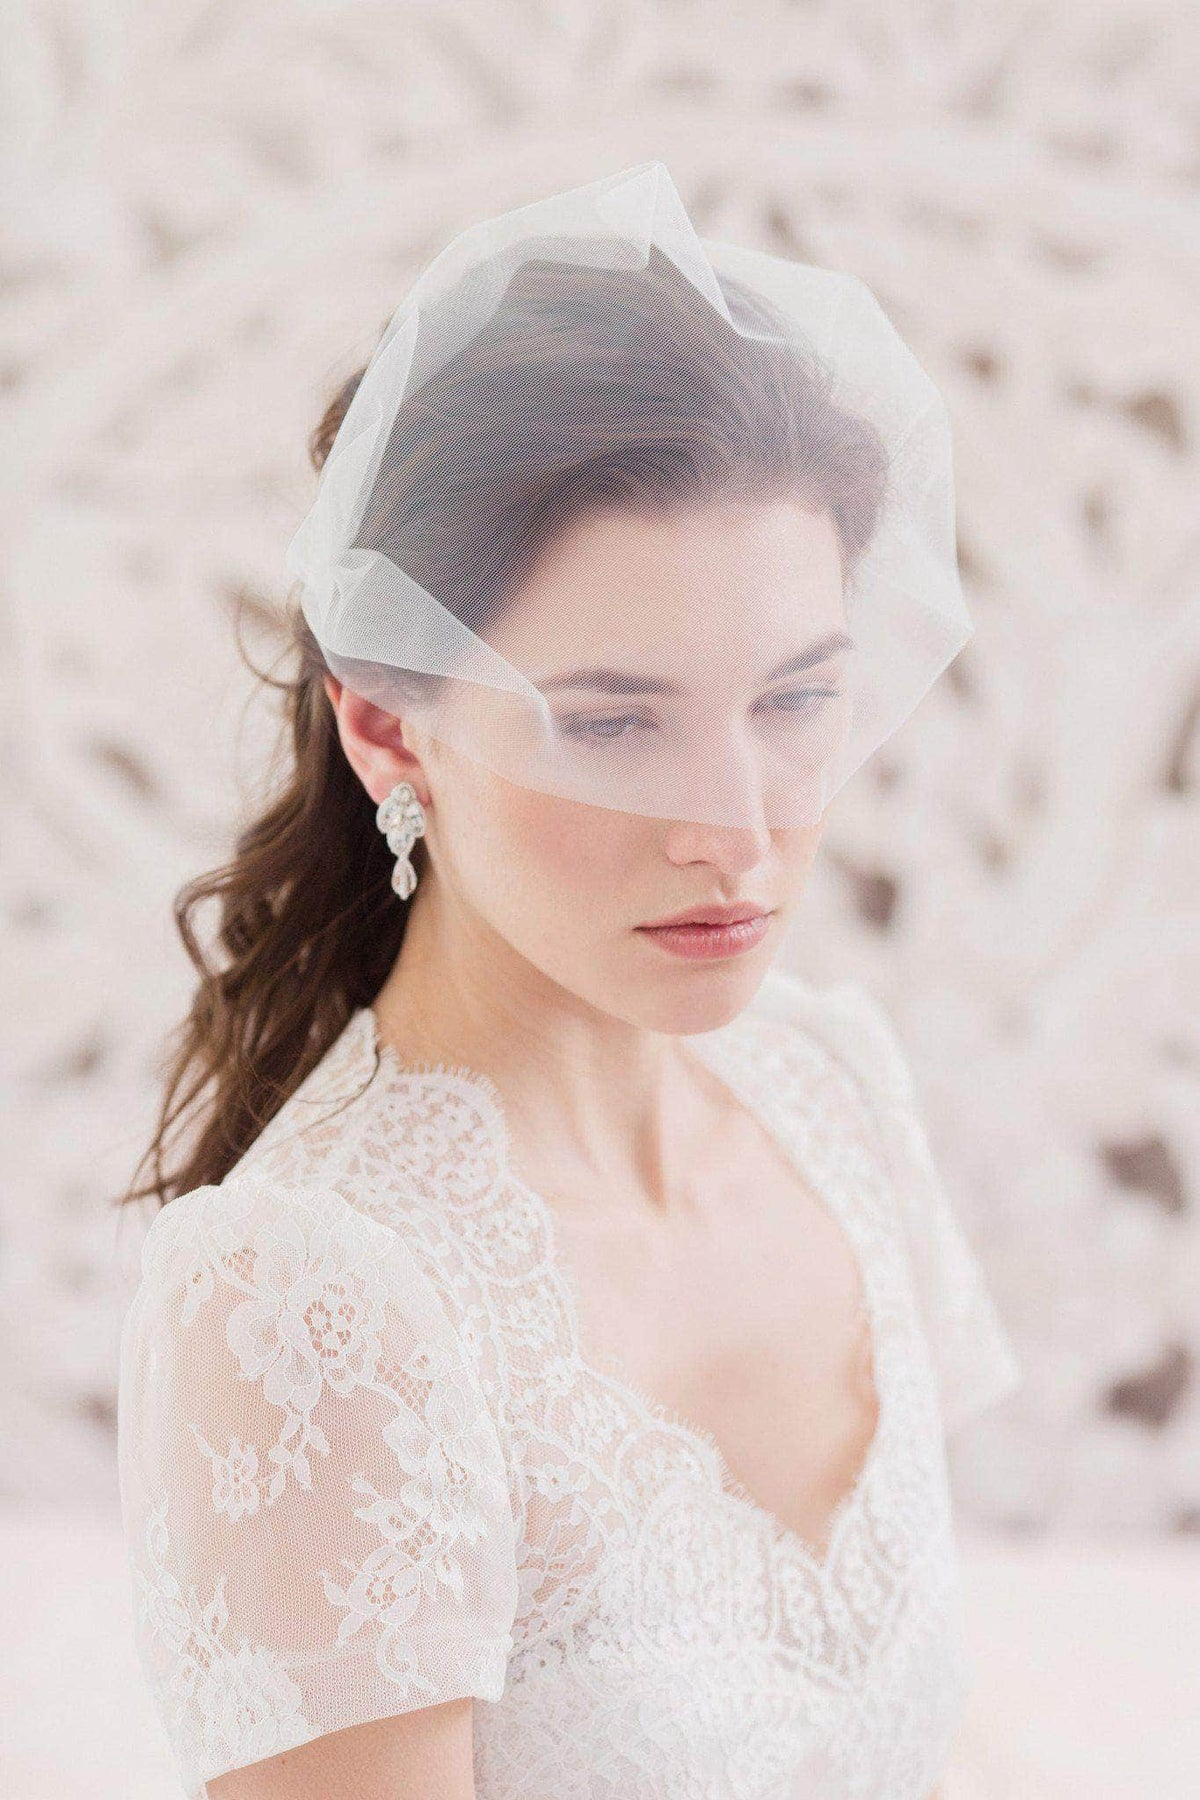 Wedding Veil Bandeau wedding veil - 'Sabra'